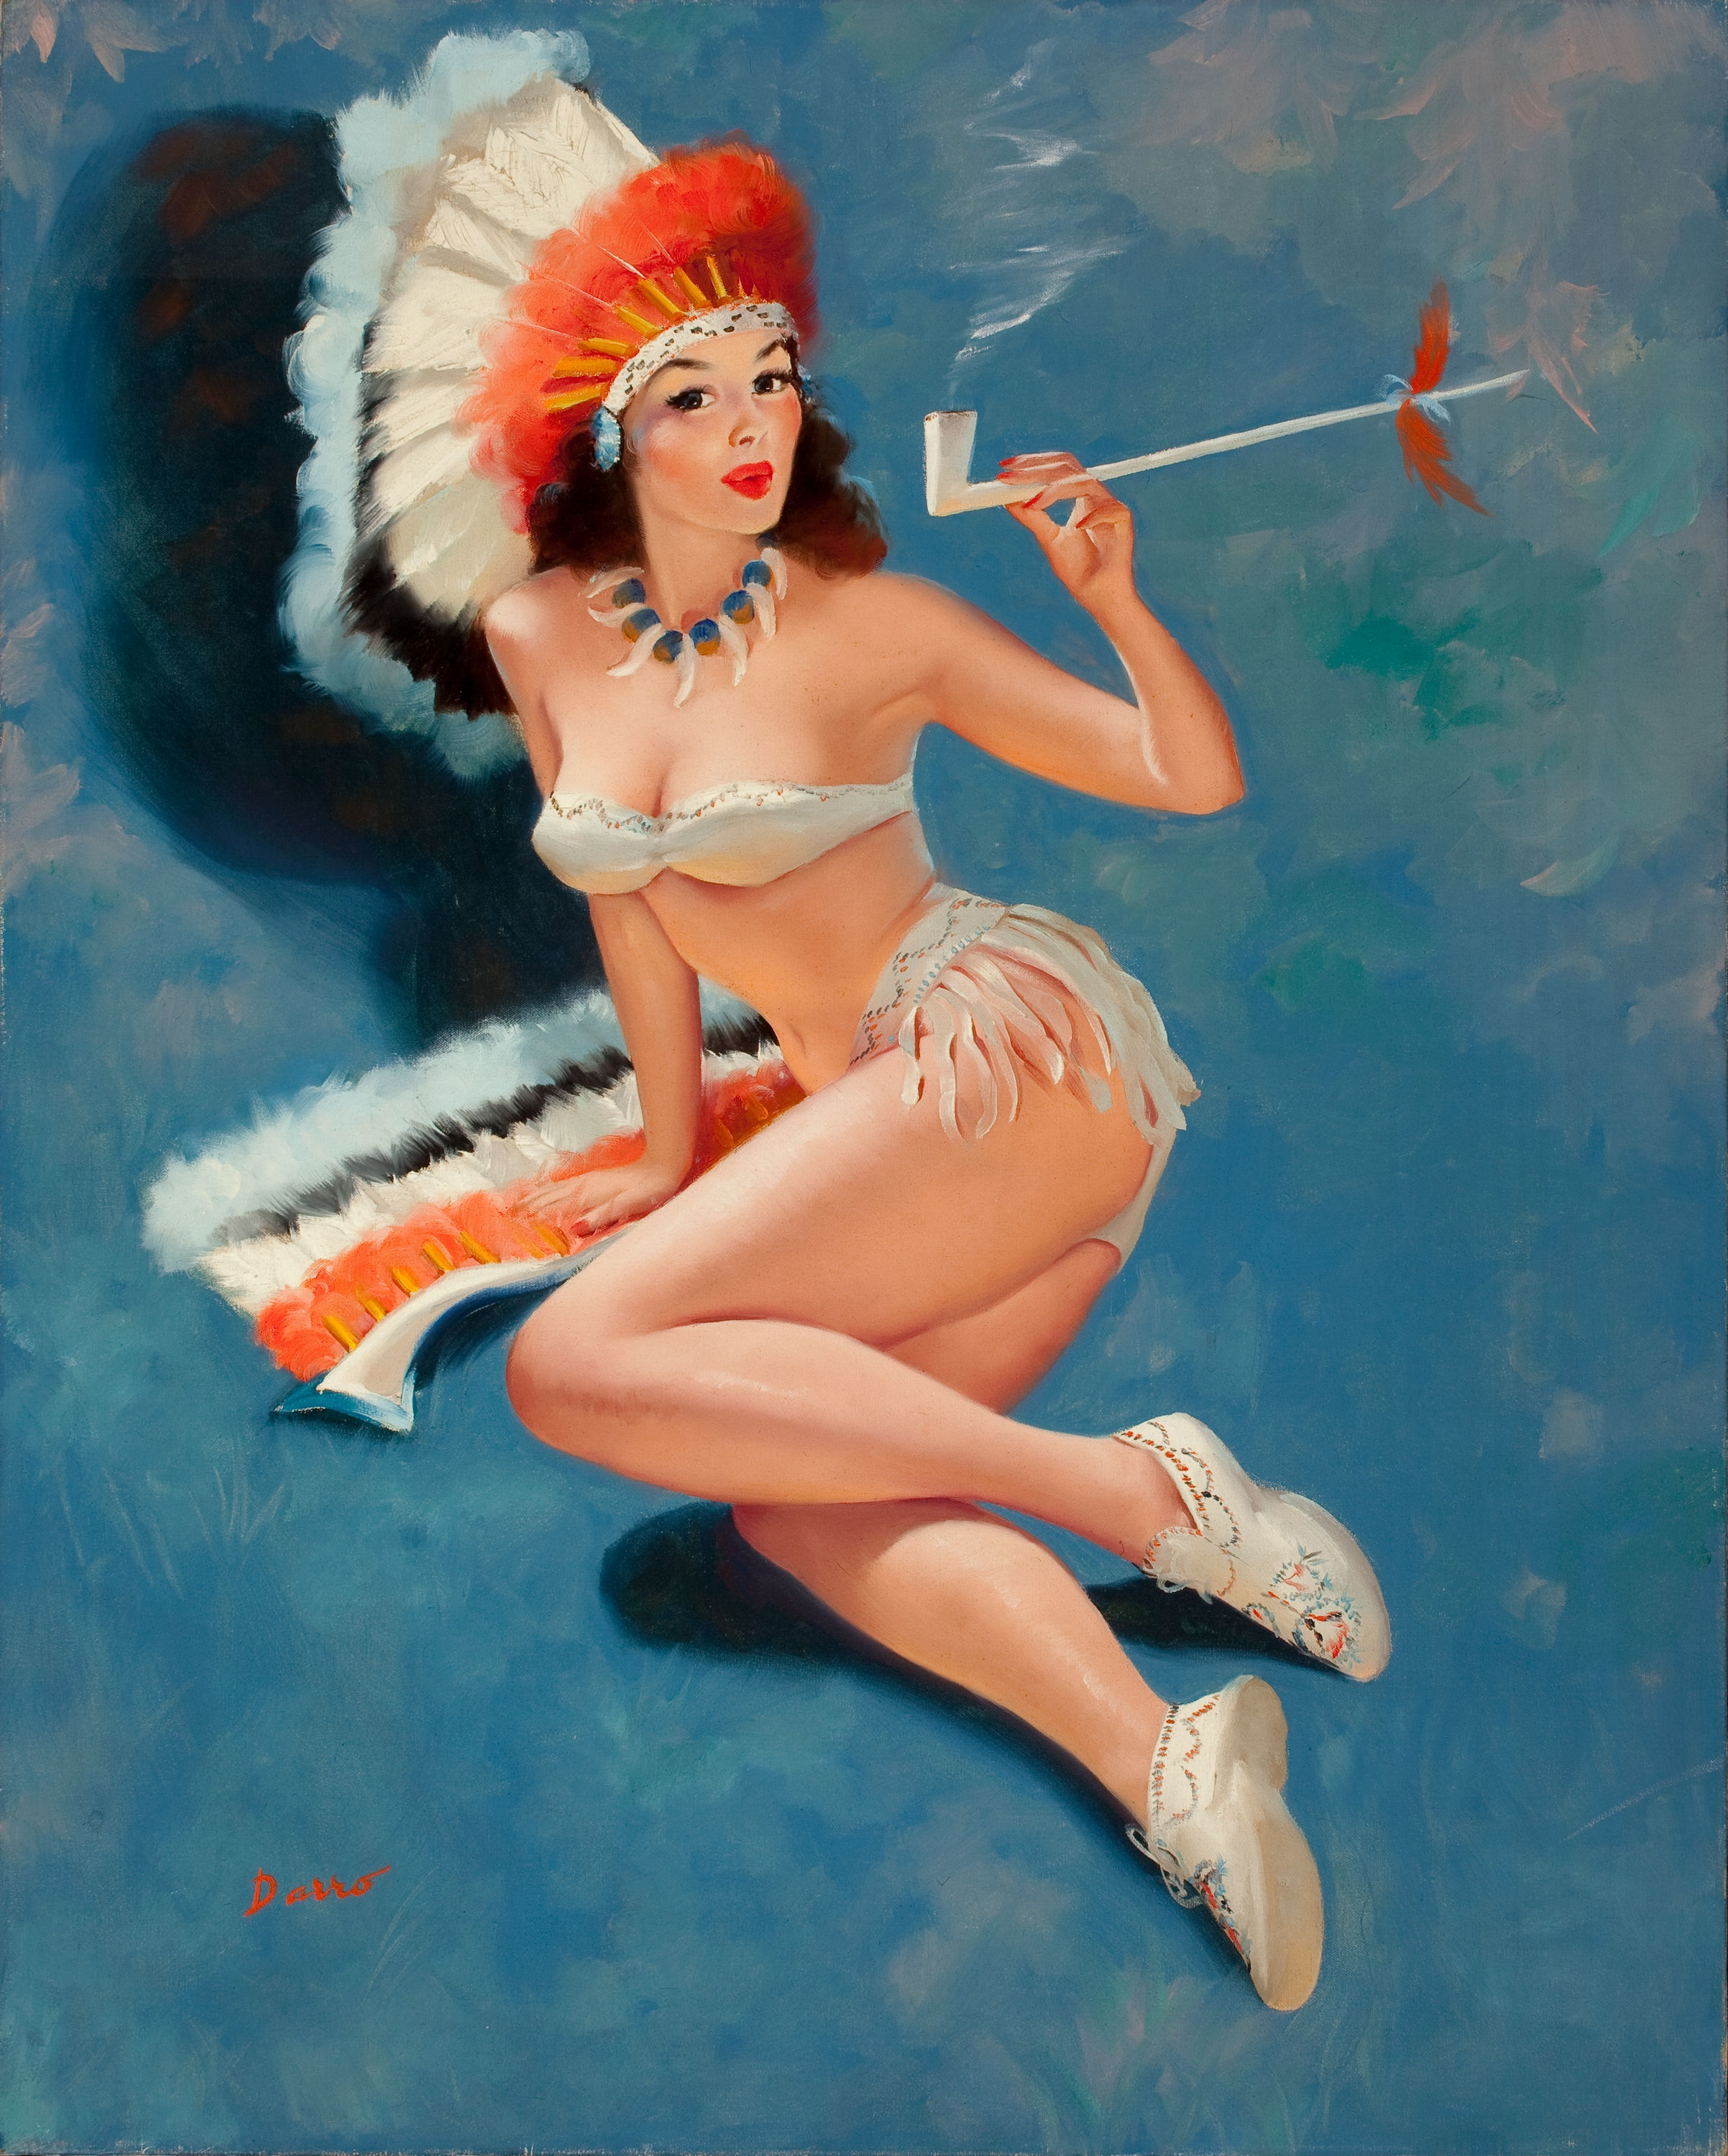 from Steve nude cowgirl and indian maiden